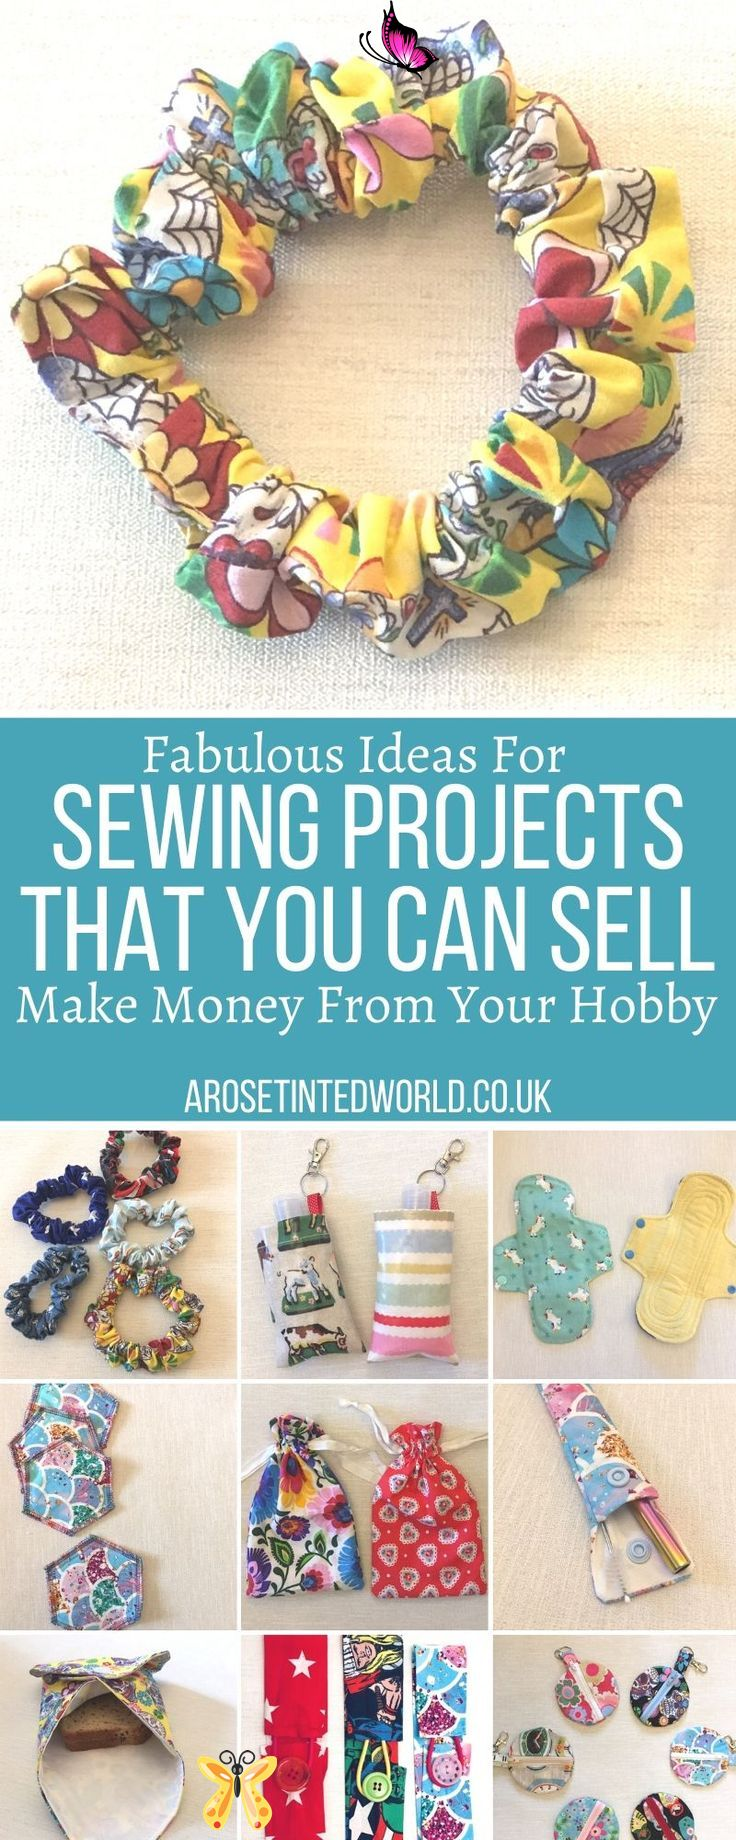 How To Make Money Selling Fabric